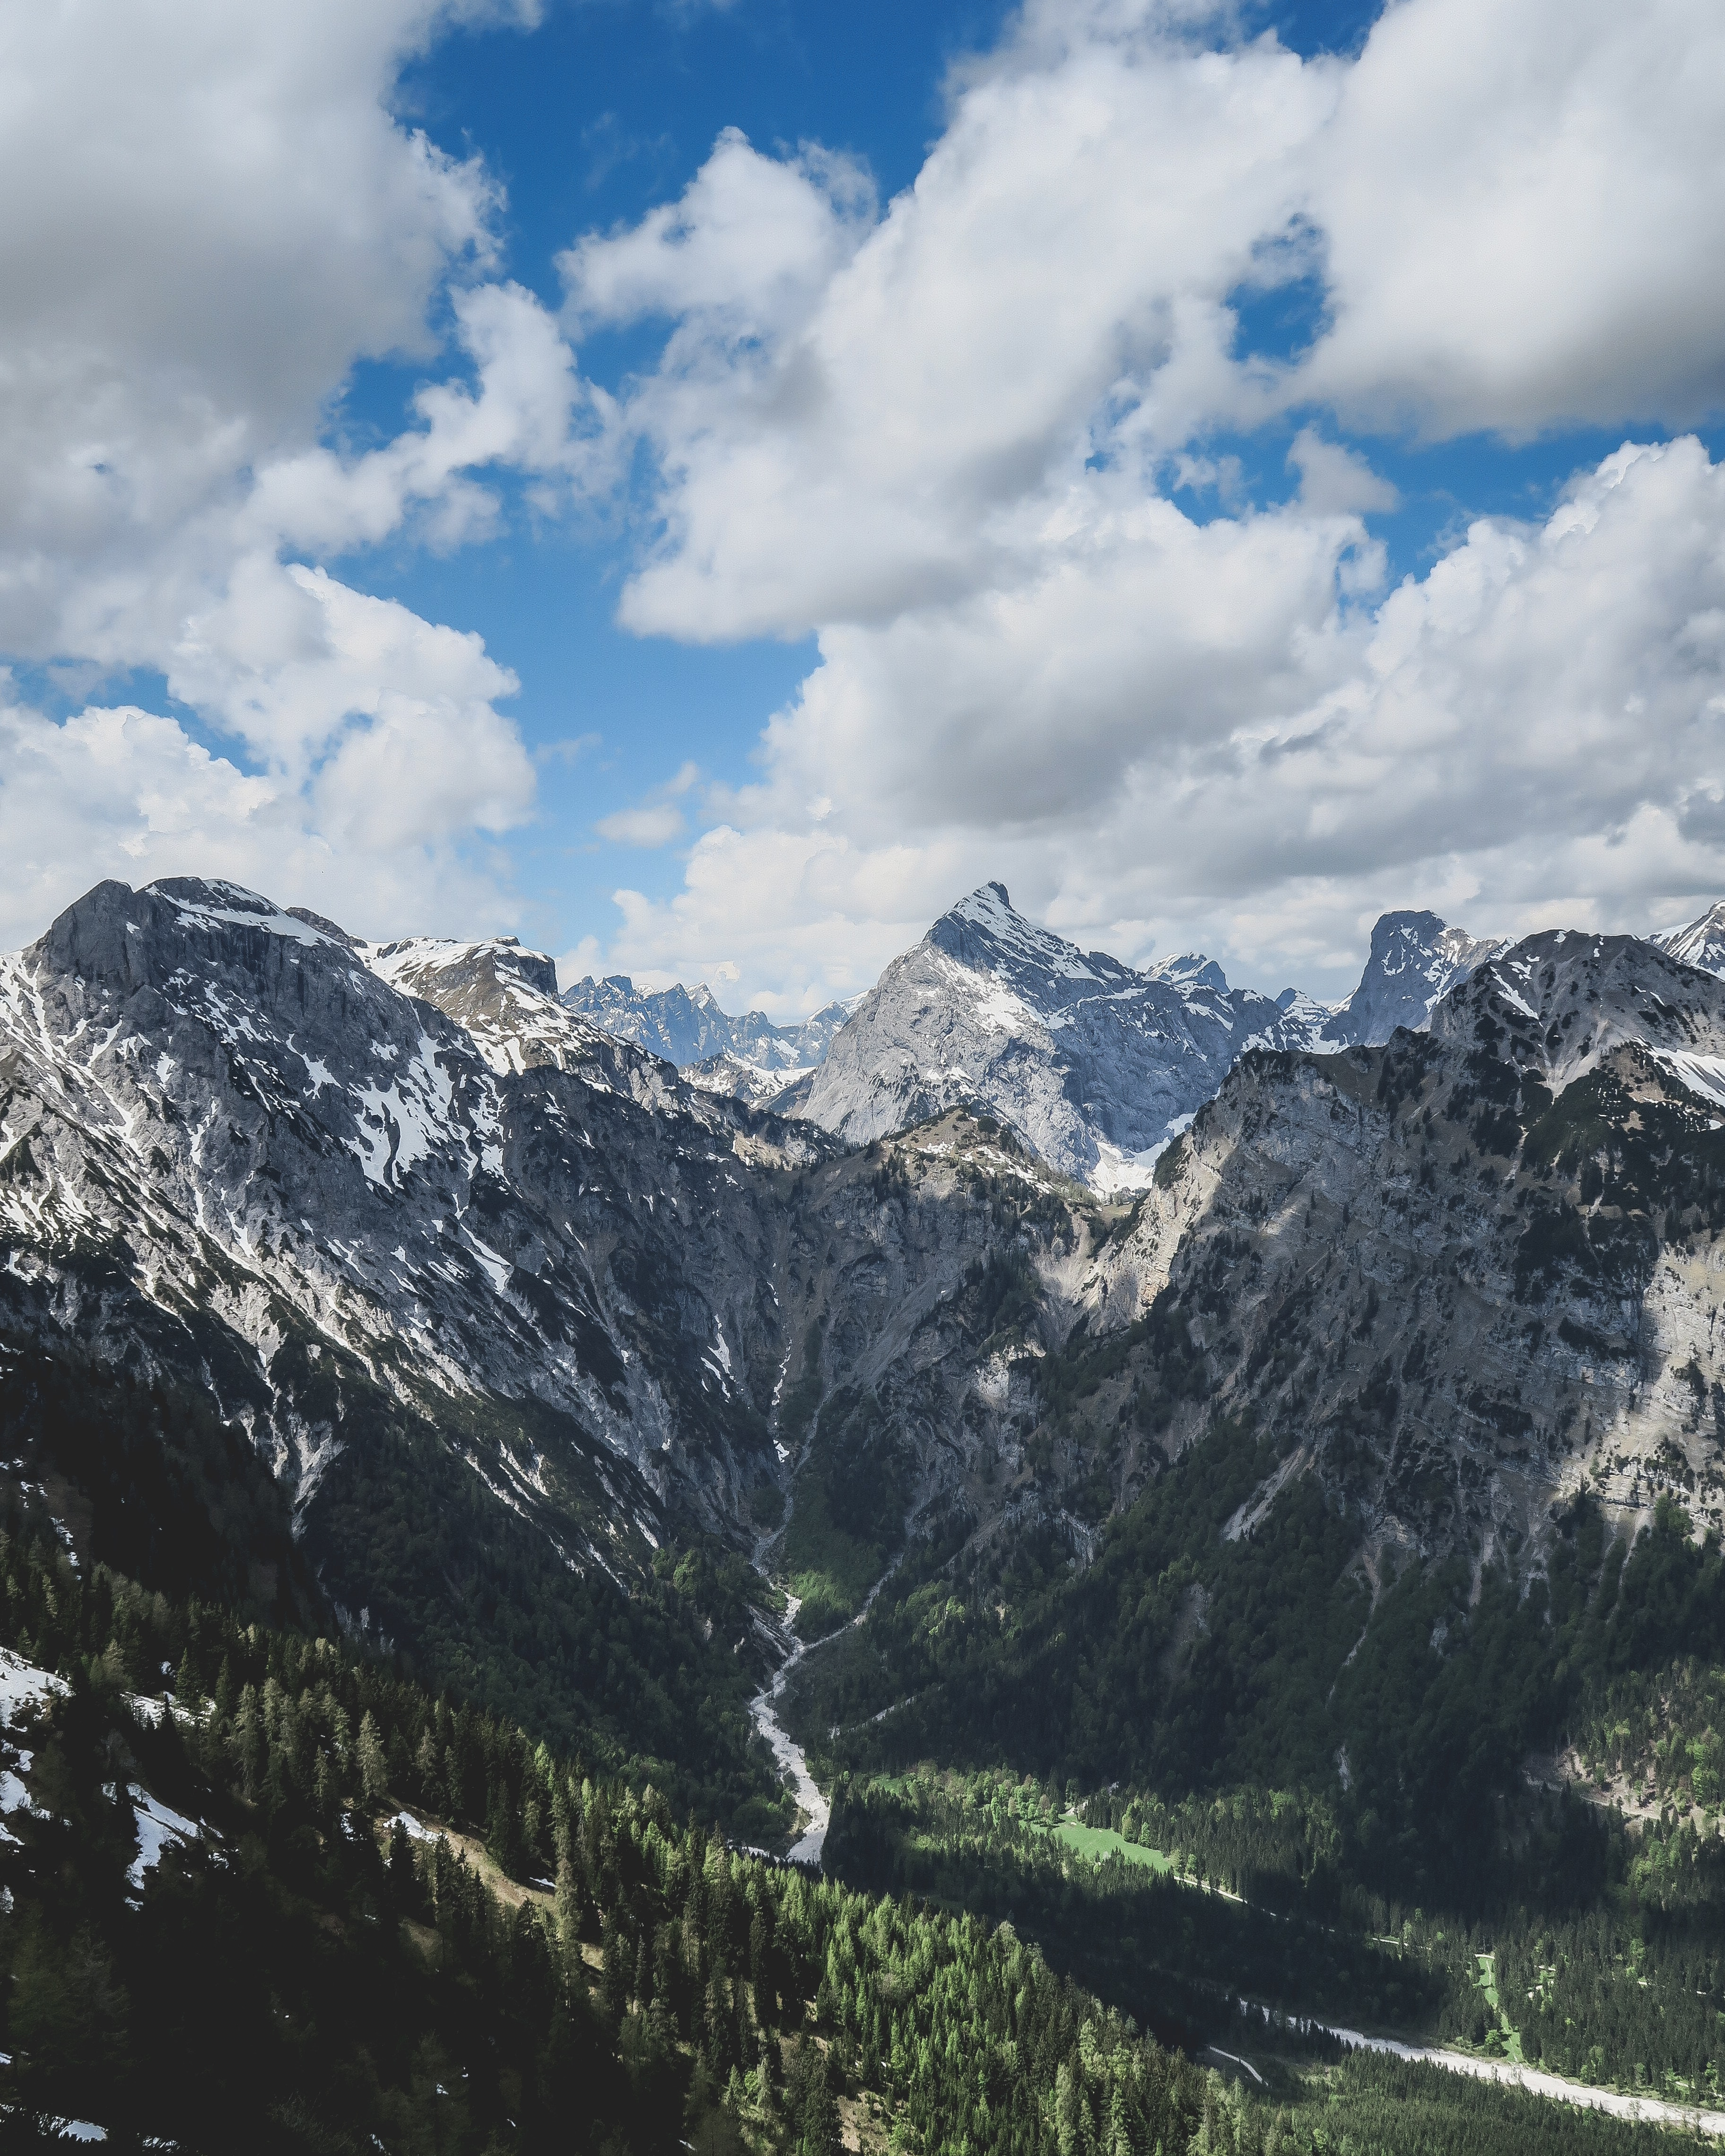 River flowing from the snowy peaks of Pertisau into the pine valley on a cloudy day